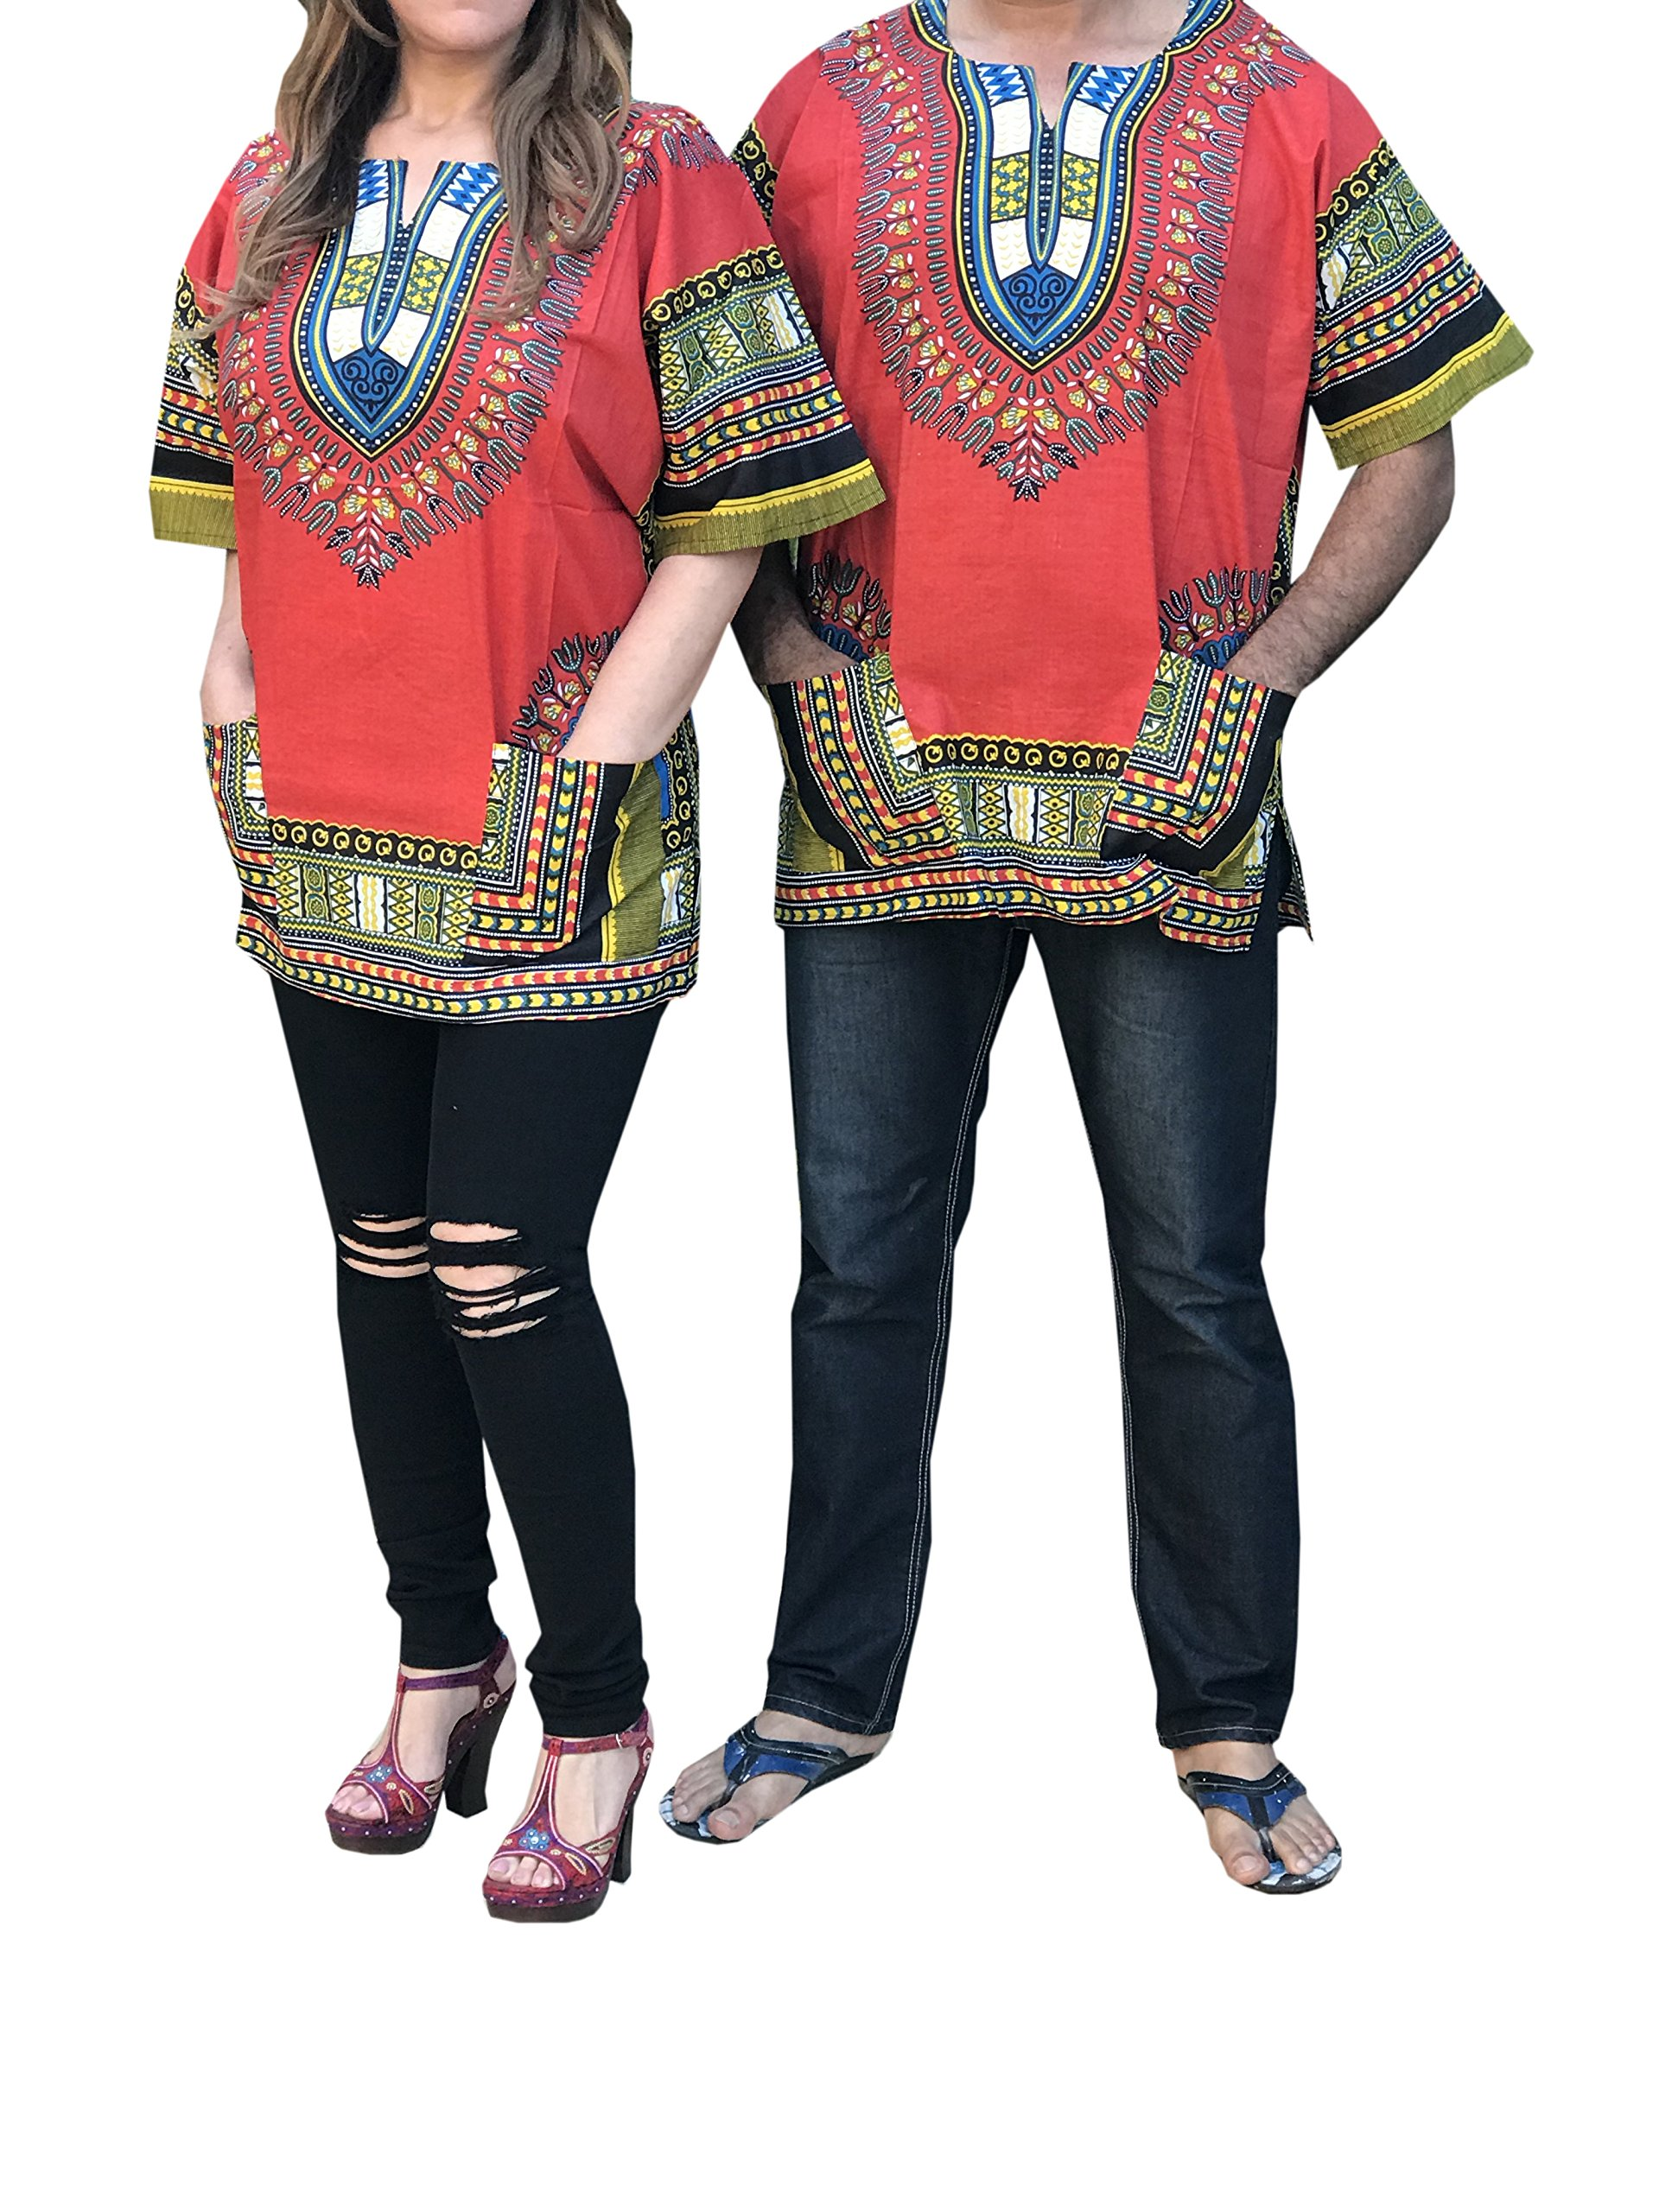 d8c47c4f9658 Get Quotations · African Men Women Dashiki Shirt Top Blouse Hippie Tribal  Caftan with two pockets